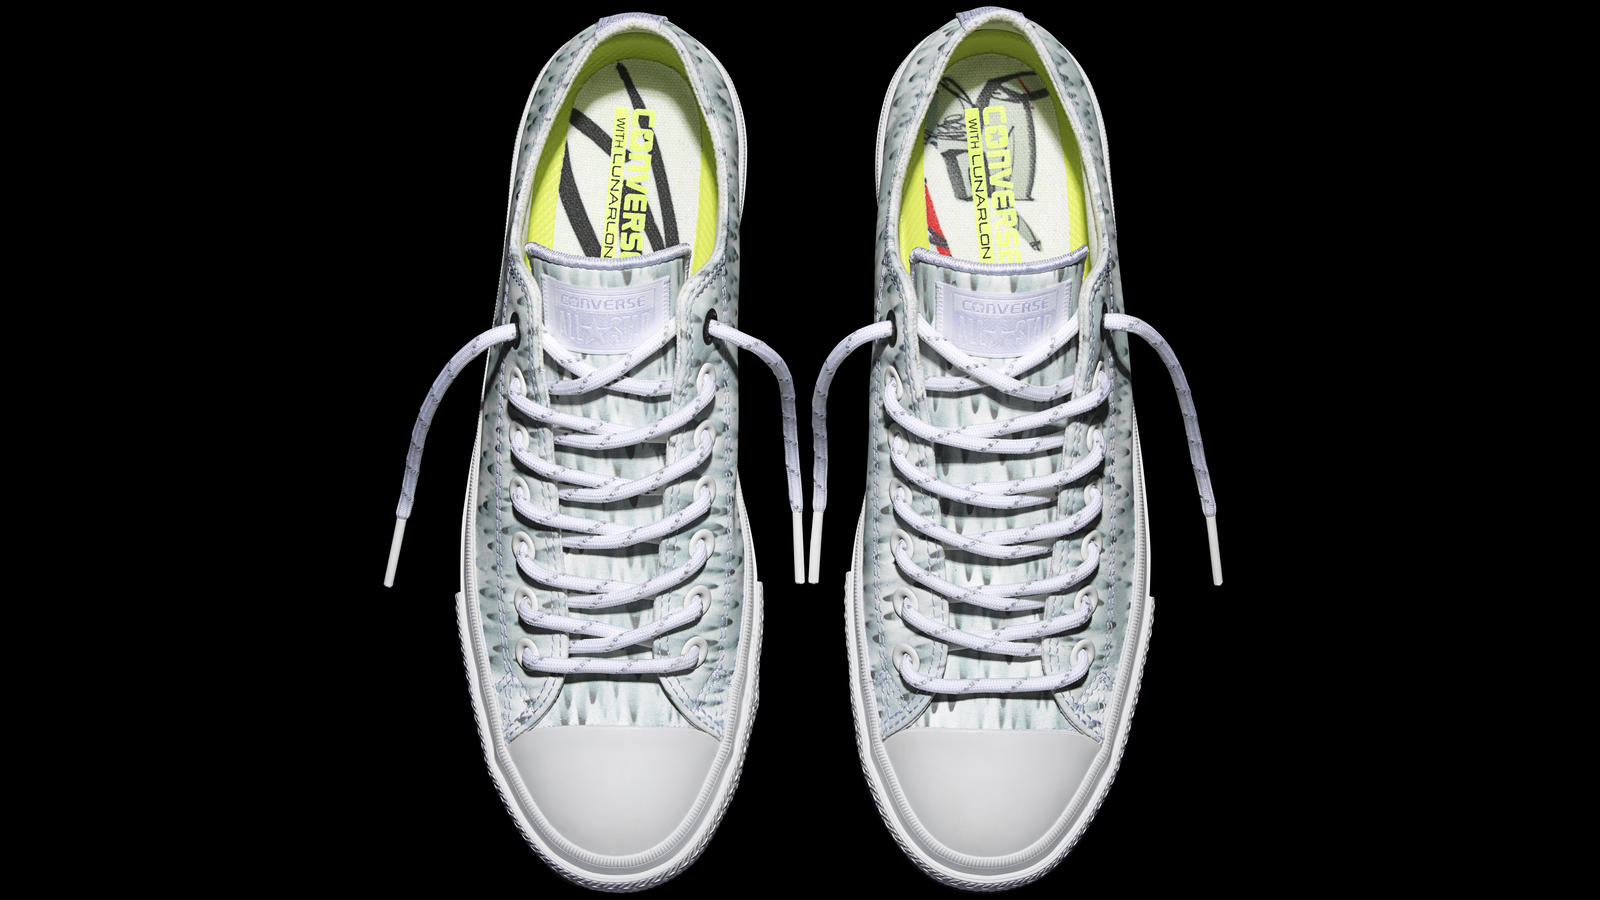 8f5660b6745a85 CONVERSE DEBUTS SECOND CHUCK TAYLOR ALL STAR II FUTURA COLLABORATION ...